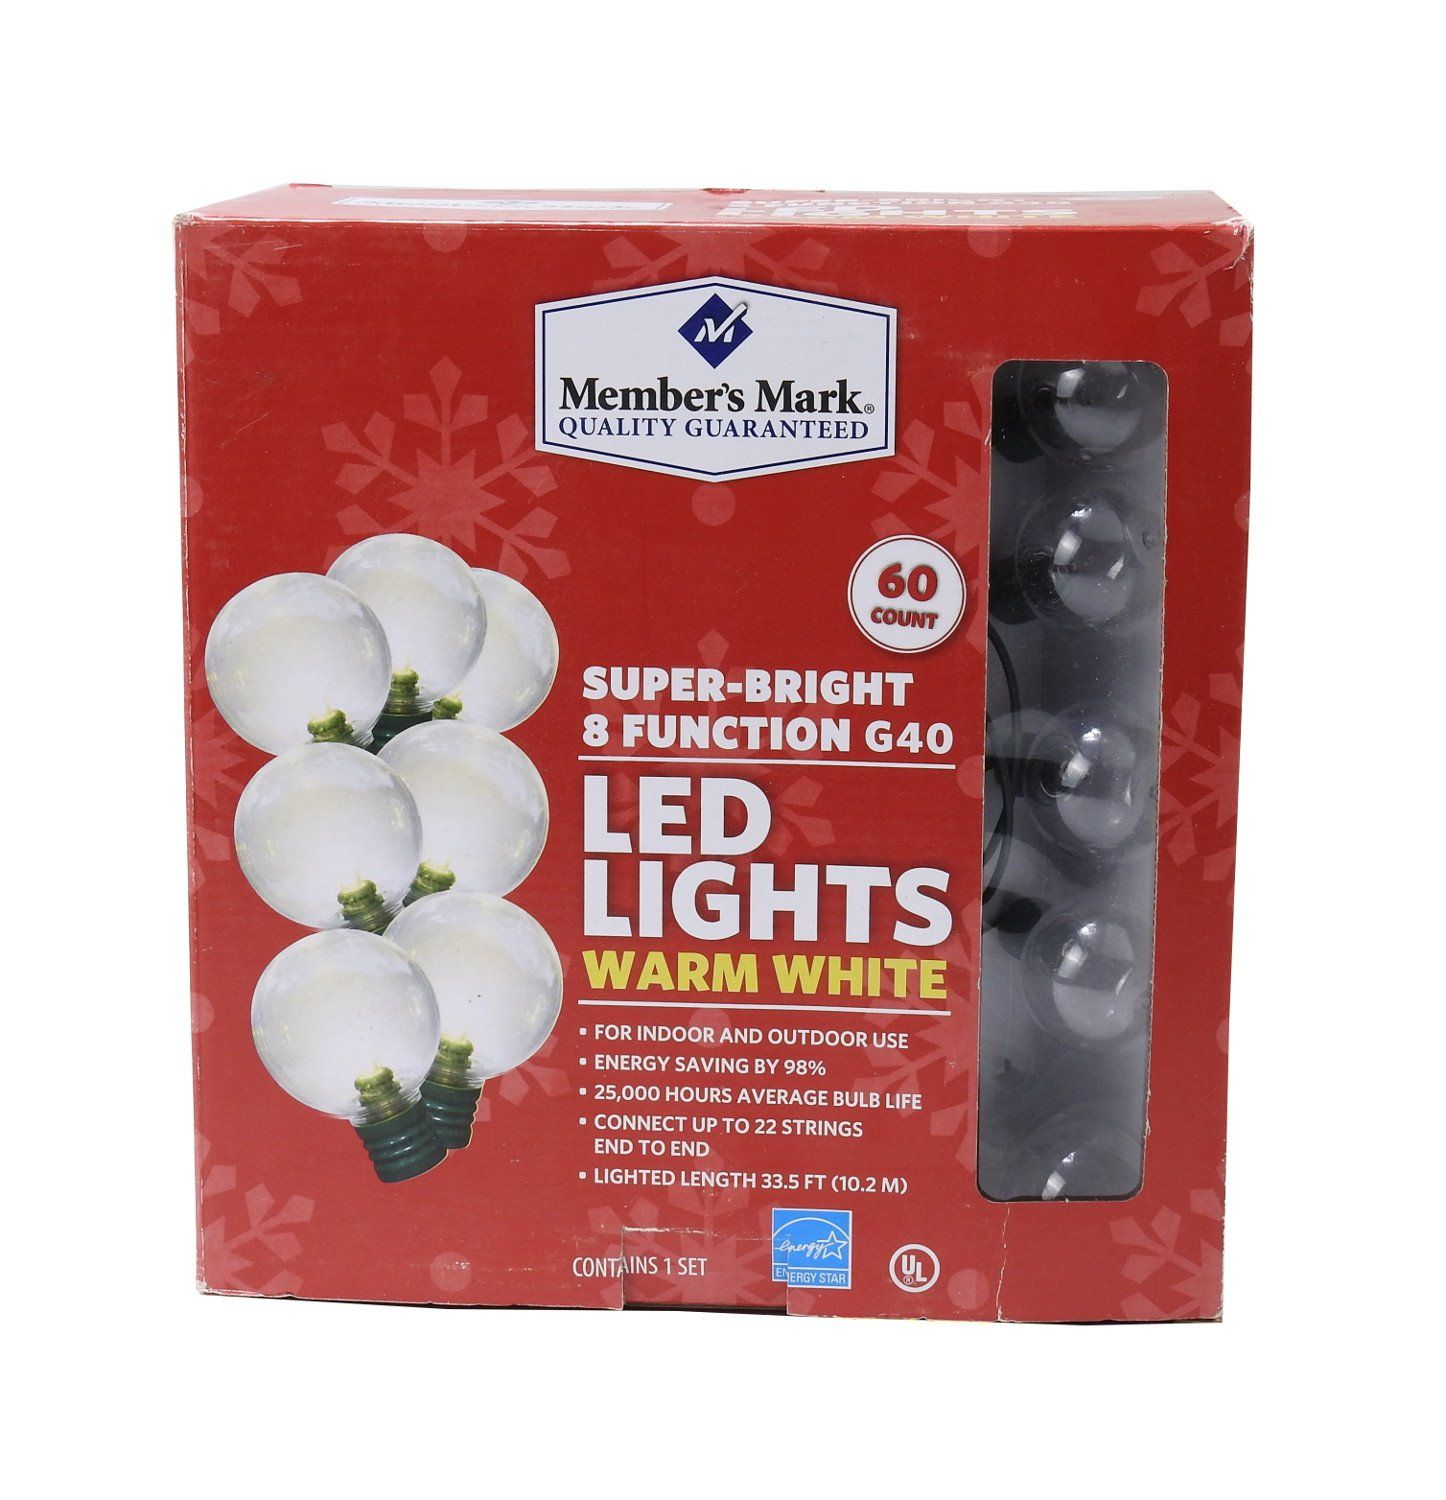 NEW Members Mark 8 Function Super Bright LED G40 Lights lamps Warm White 60!